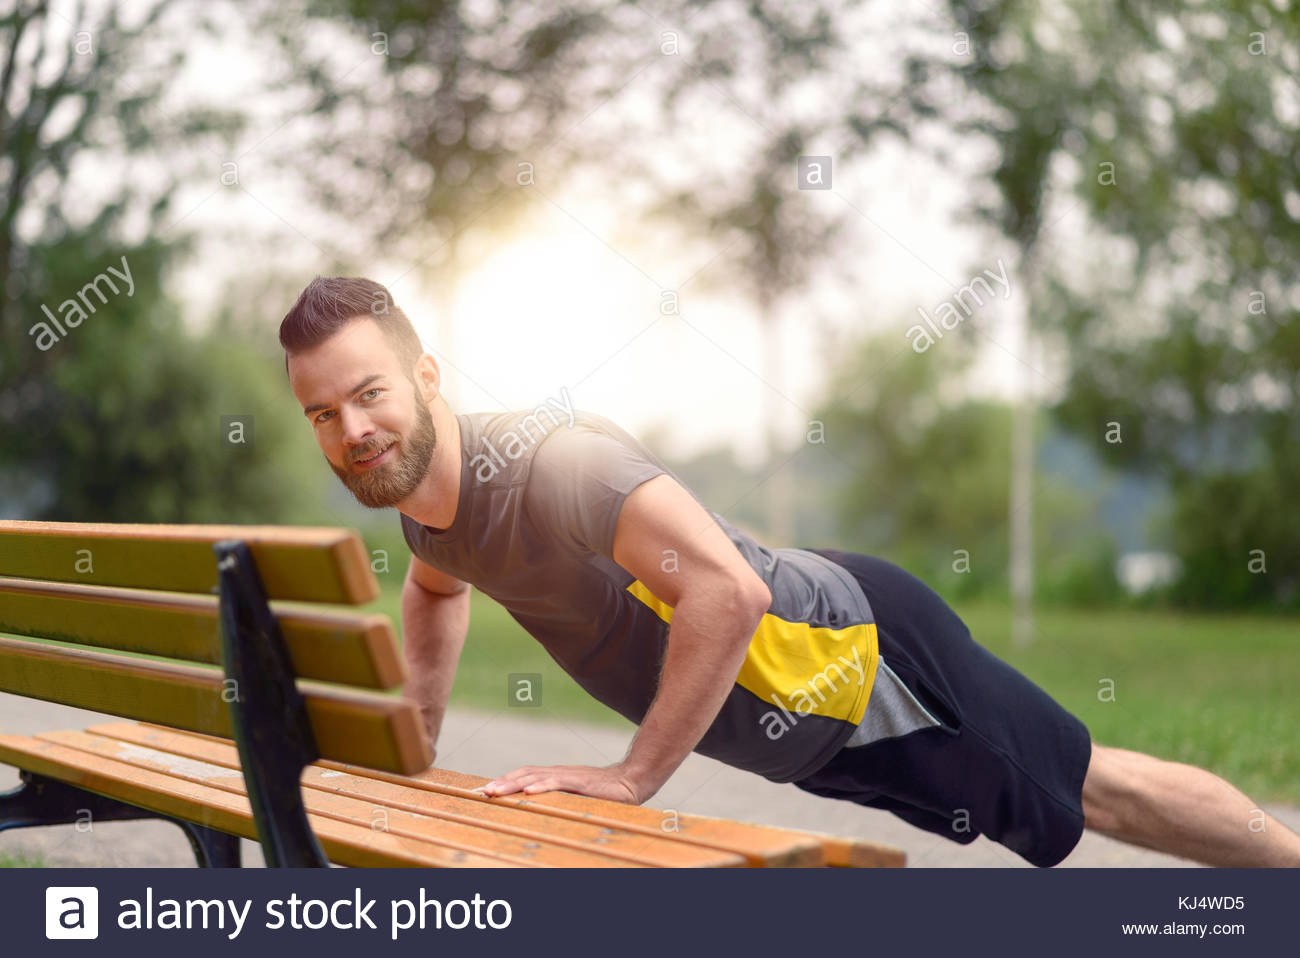 Young man doing push-ups in a park - Stock Image